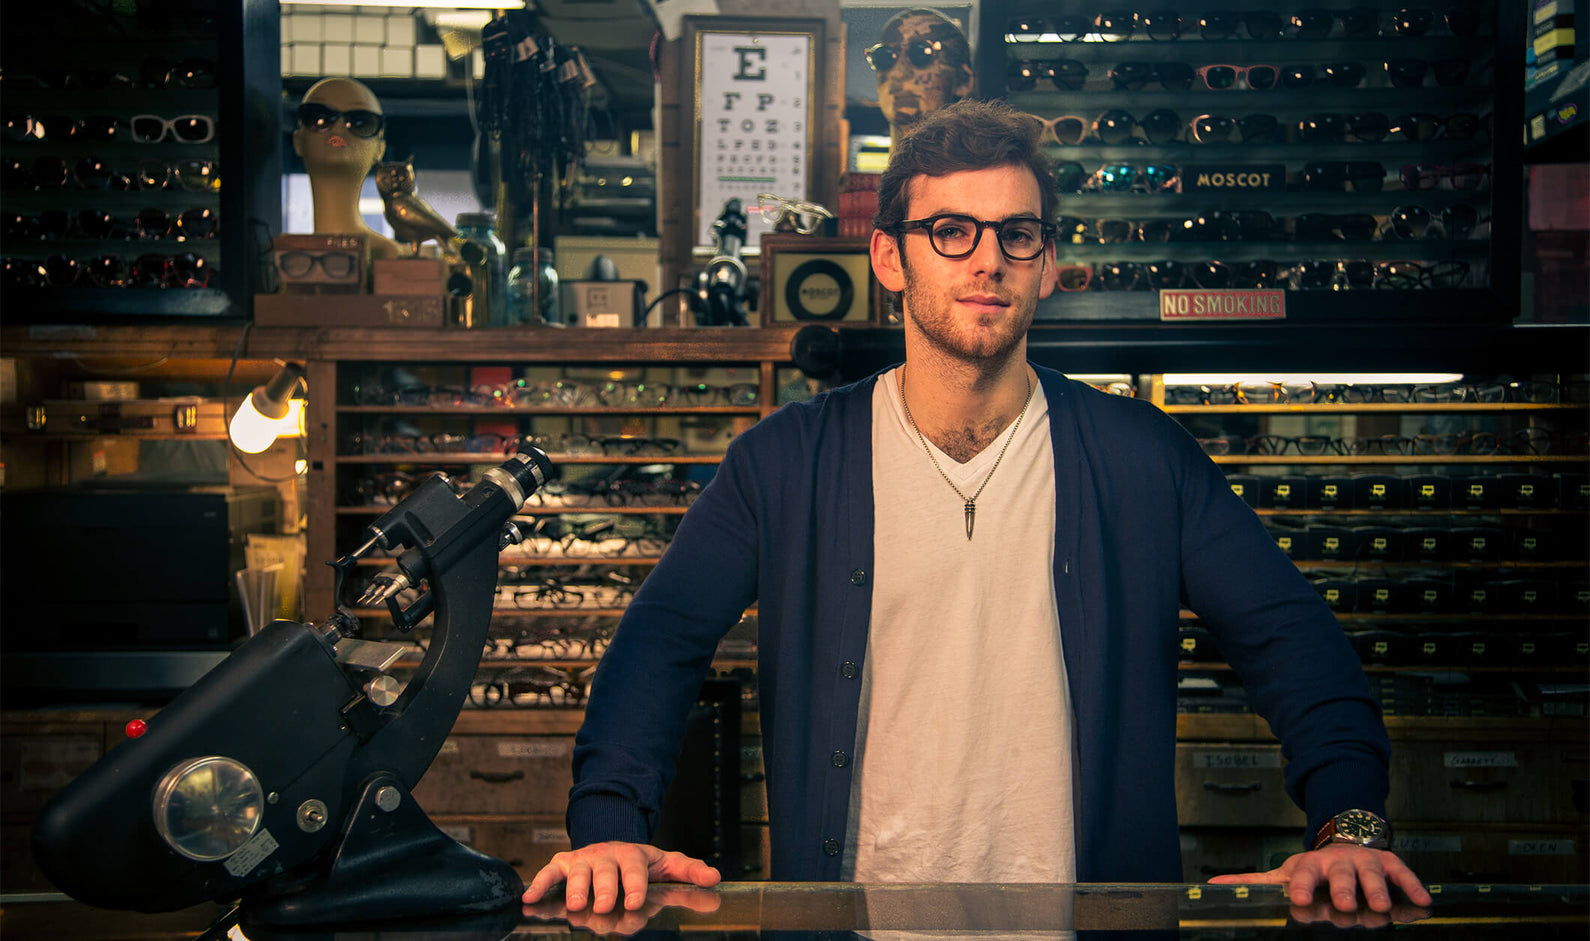 In 2013 Harvey's son, Zack Moscot, a formally trained industrial designer, came on board, making him the fifth generation Moscot to join the family business. He is the current Chief Design Officer for the brand and heads all creative and design for the company.